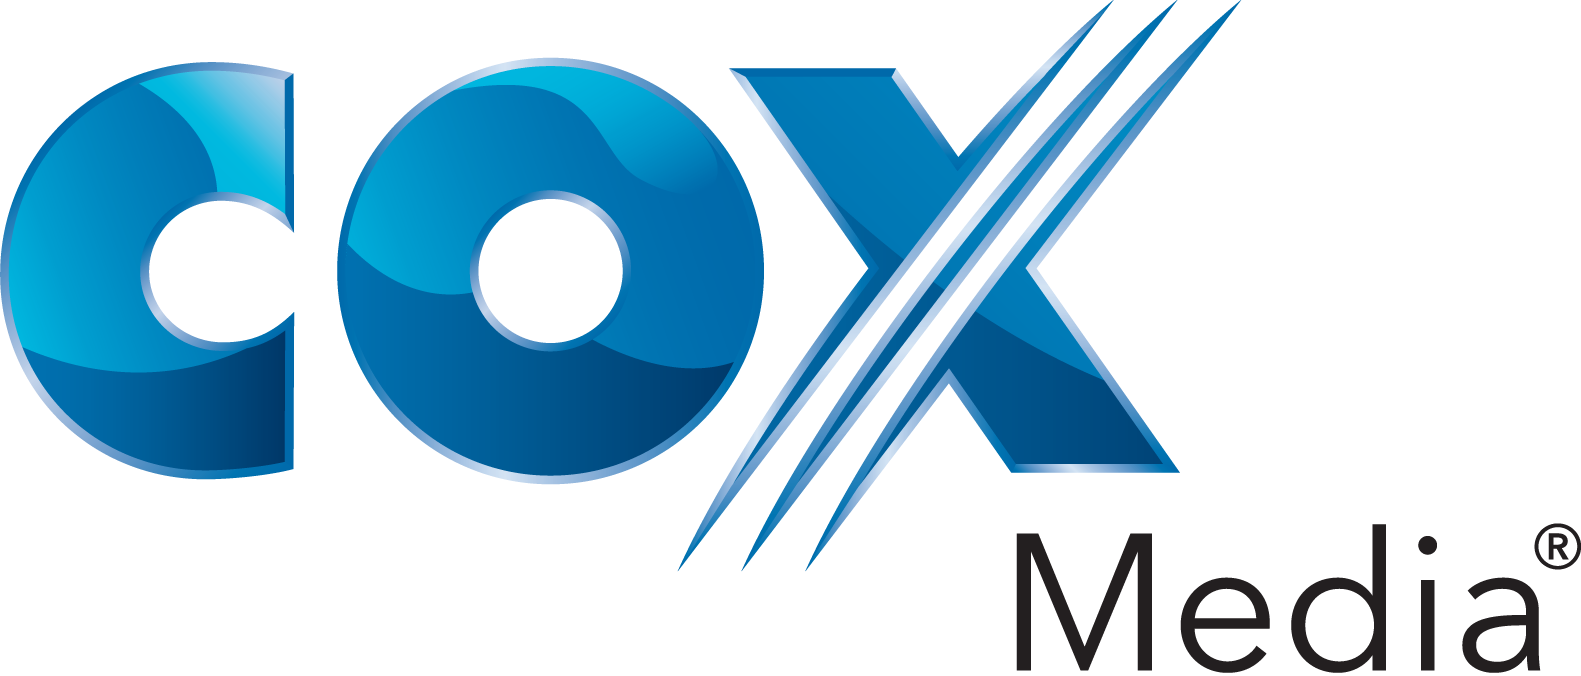 Cox Media Logo Image For Ad Service